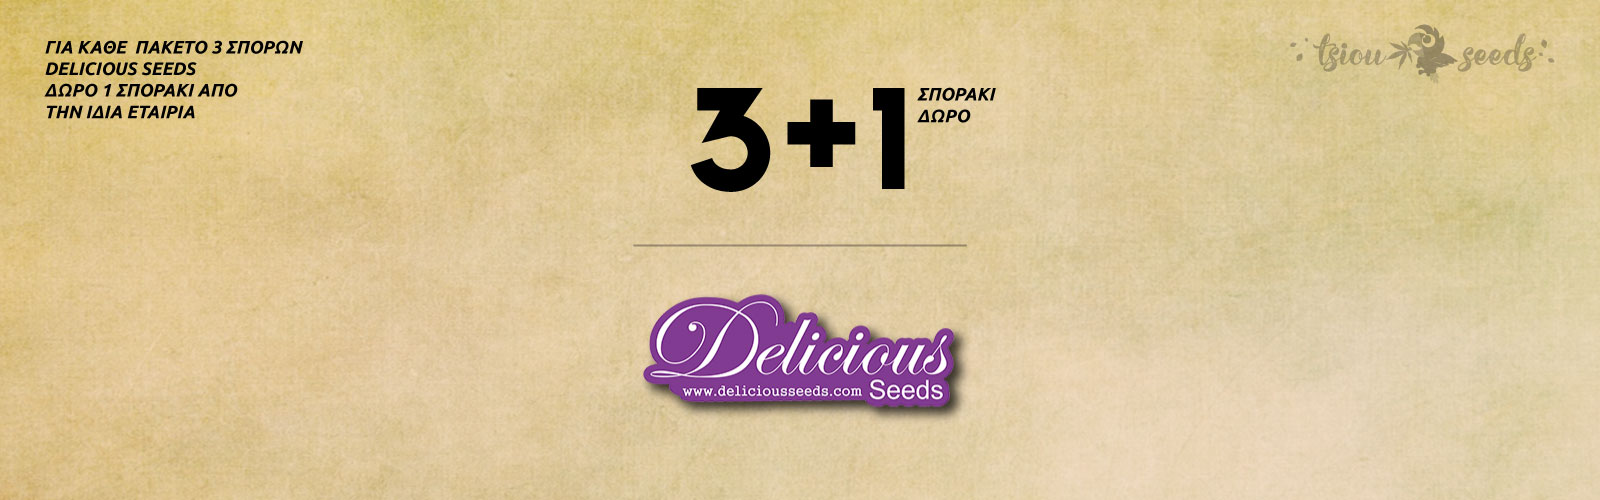 Delicious-Offer-2